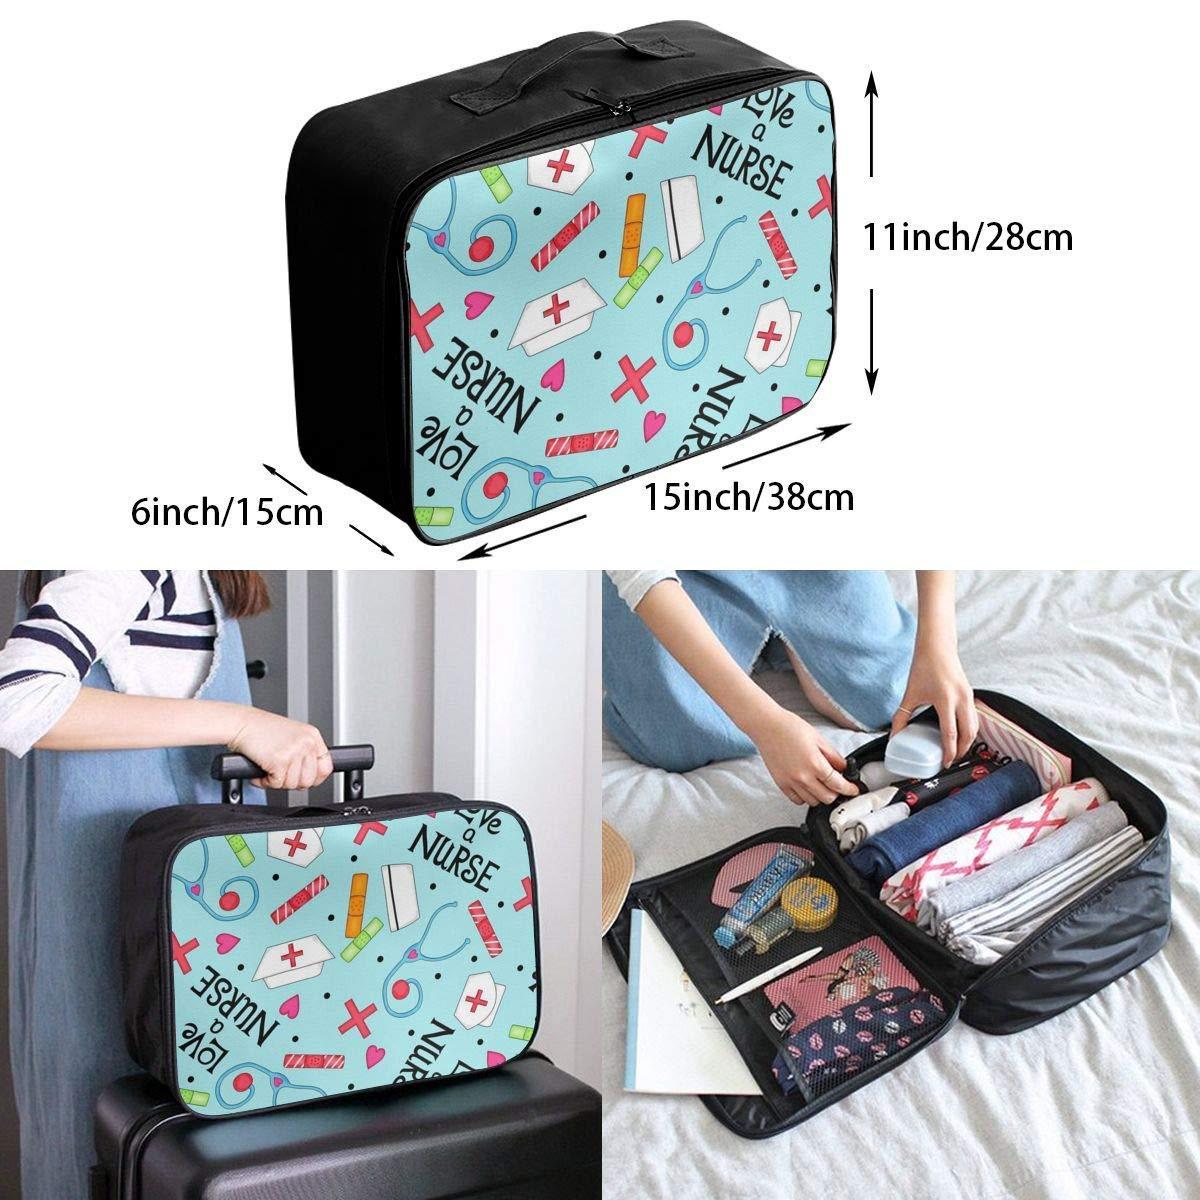 Travel Lightweight Waterproof Foldable Storage Carry Luggage Duffle Tote Bag Love Nurse JTRVW Luggage Bags for Travel